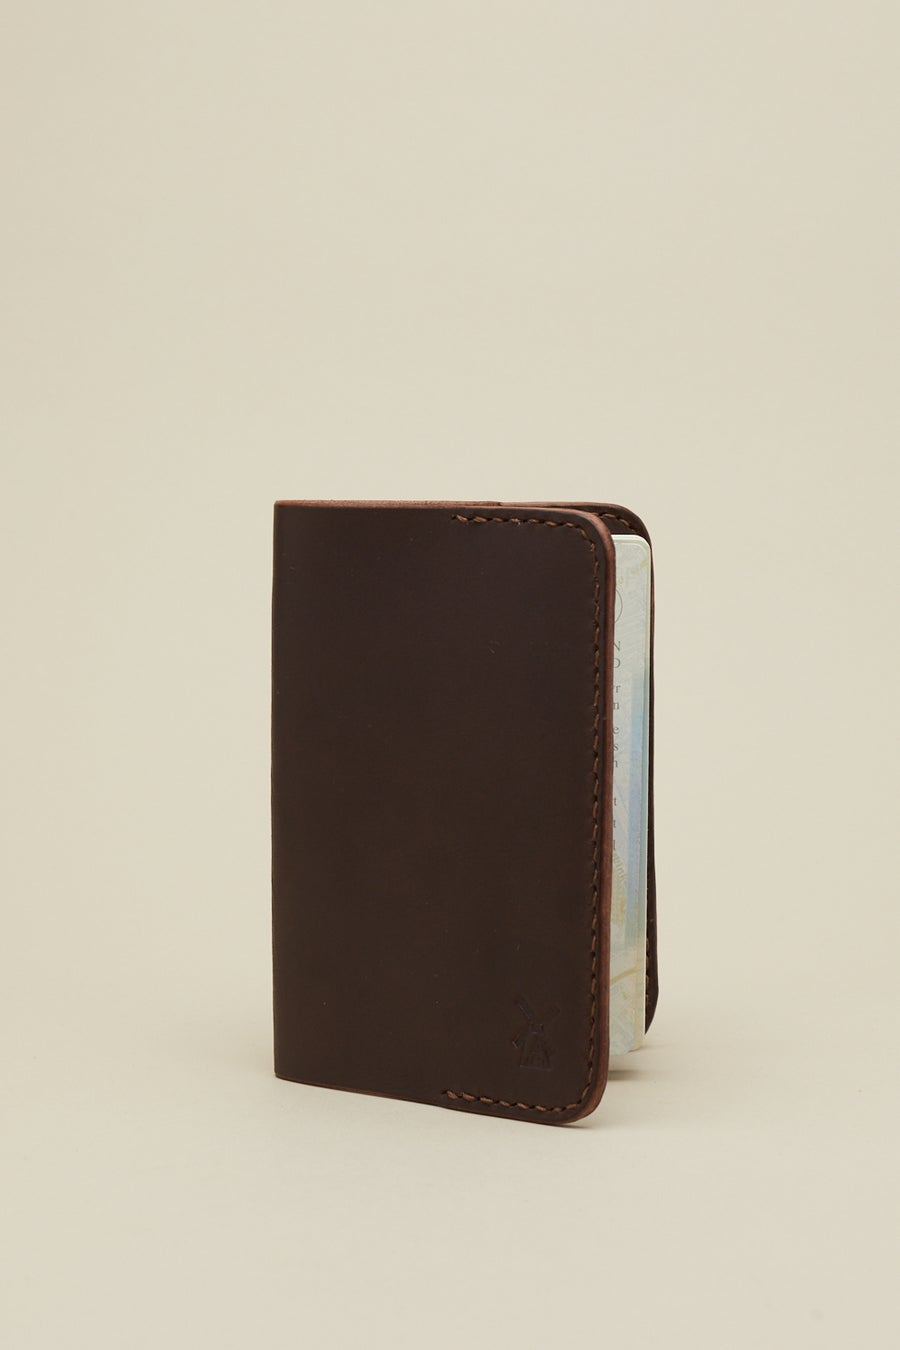 Image of Passport Case in Walnut